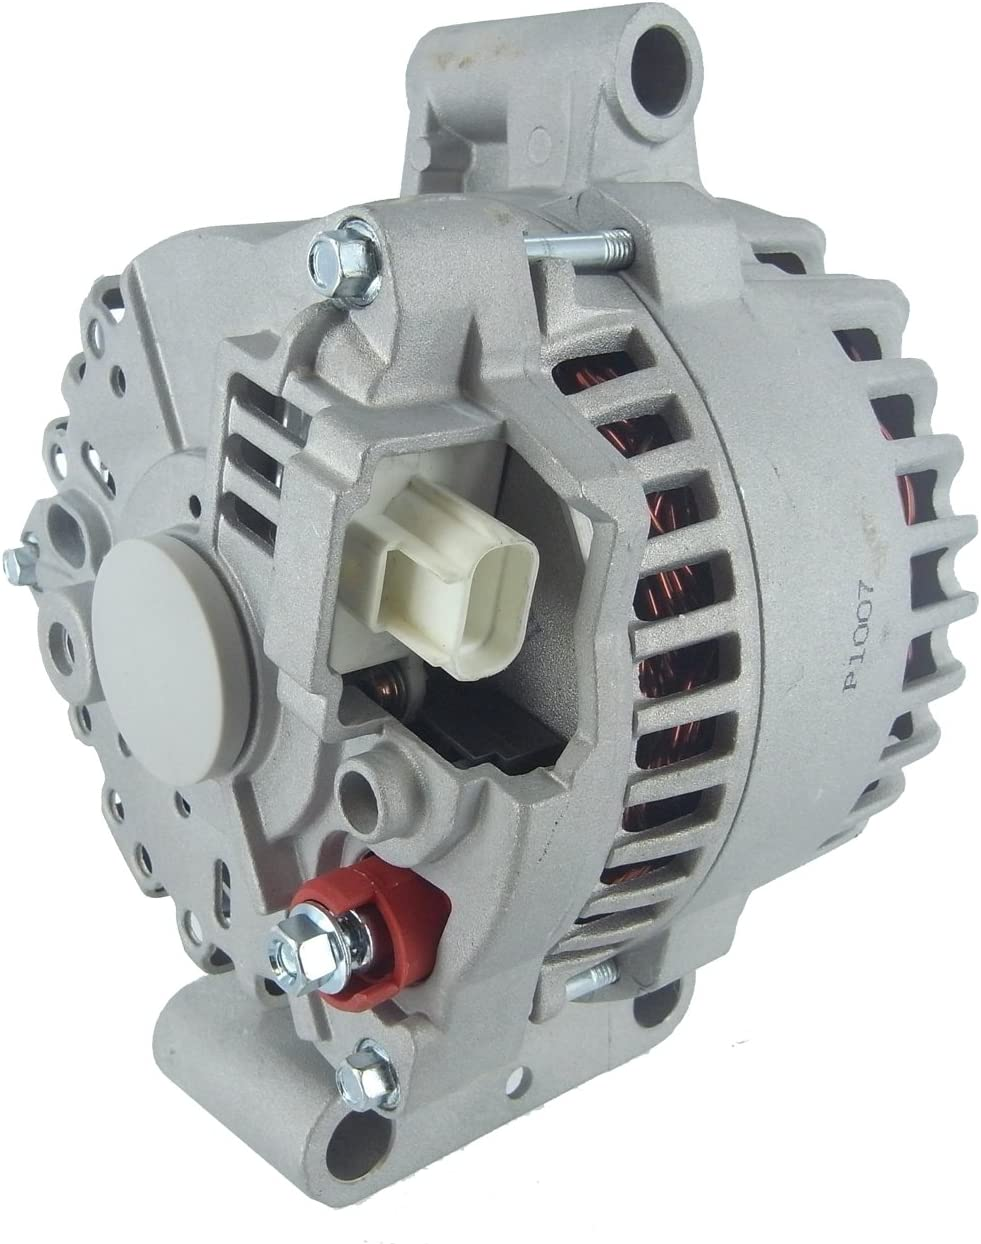 Mazda Tribute 3.0L 2001-2004 New 150 Amp Alternator For Ford Escape